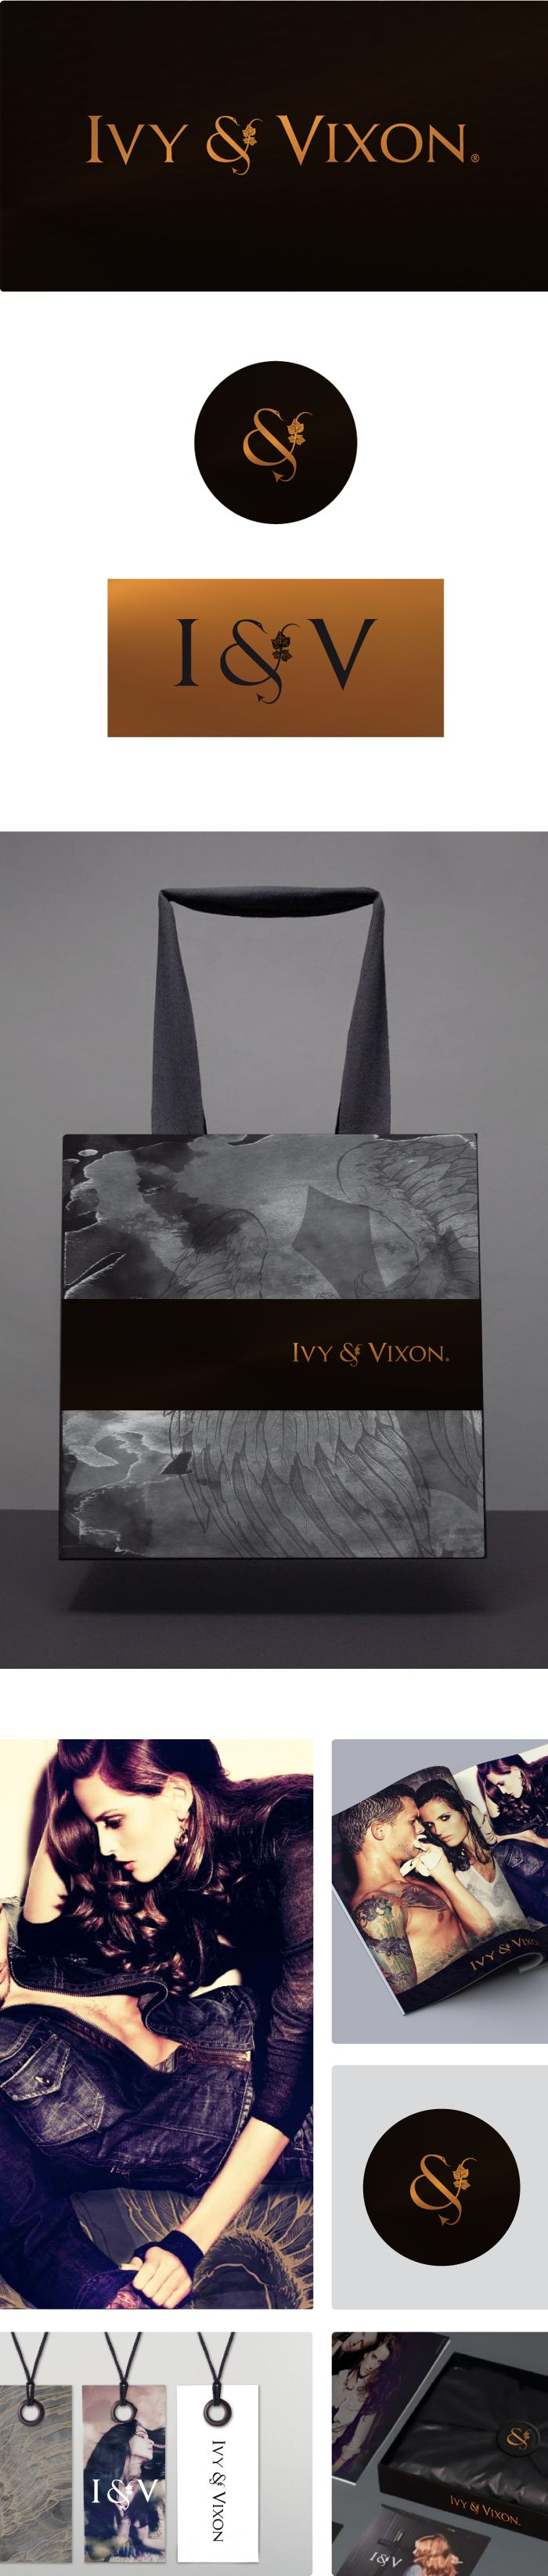 Ivy + Vixon - Clothing label brand development